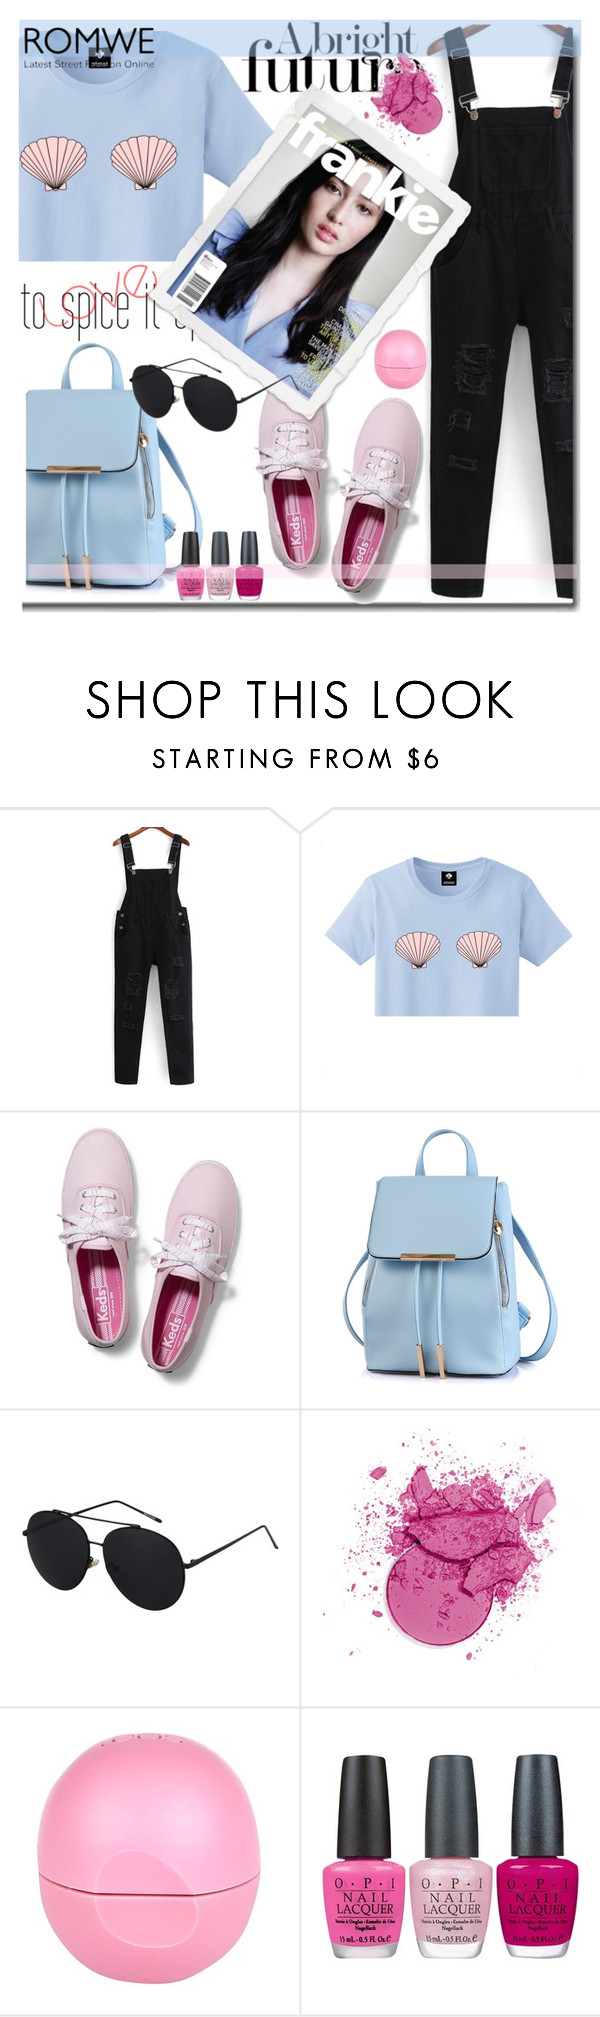 """Happiest Girls Are The Prettiest"" by daizydarling ❤ liked on Polyvore featuring Keds, River Island and OPI"